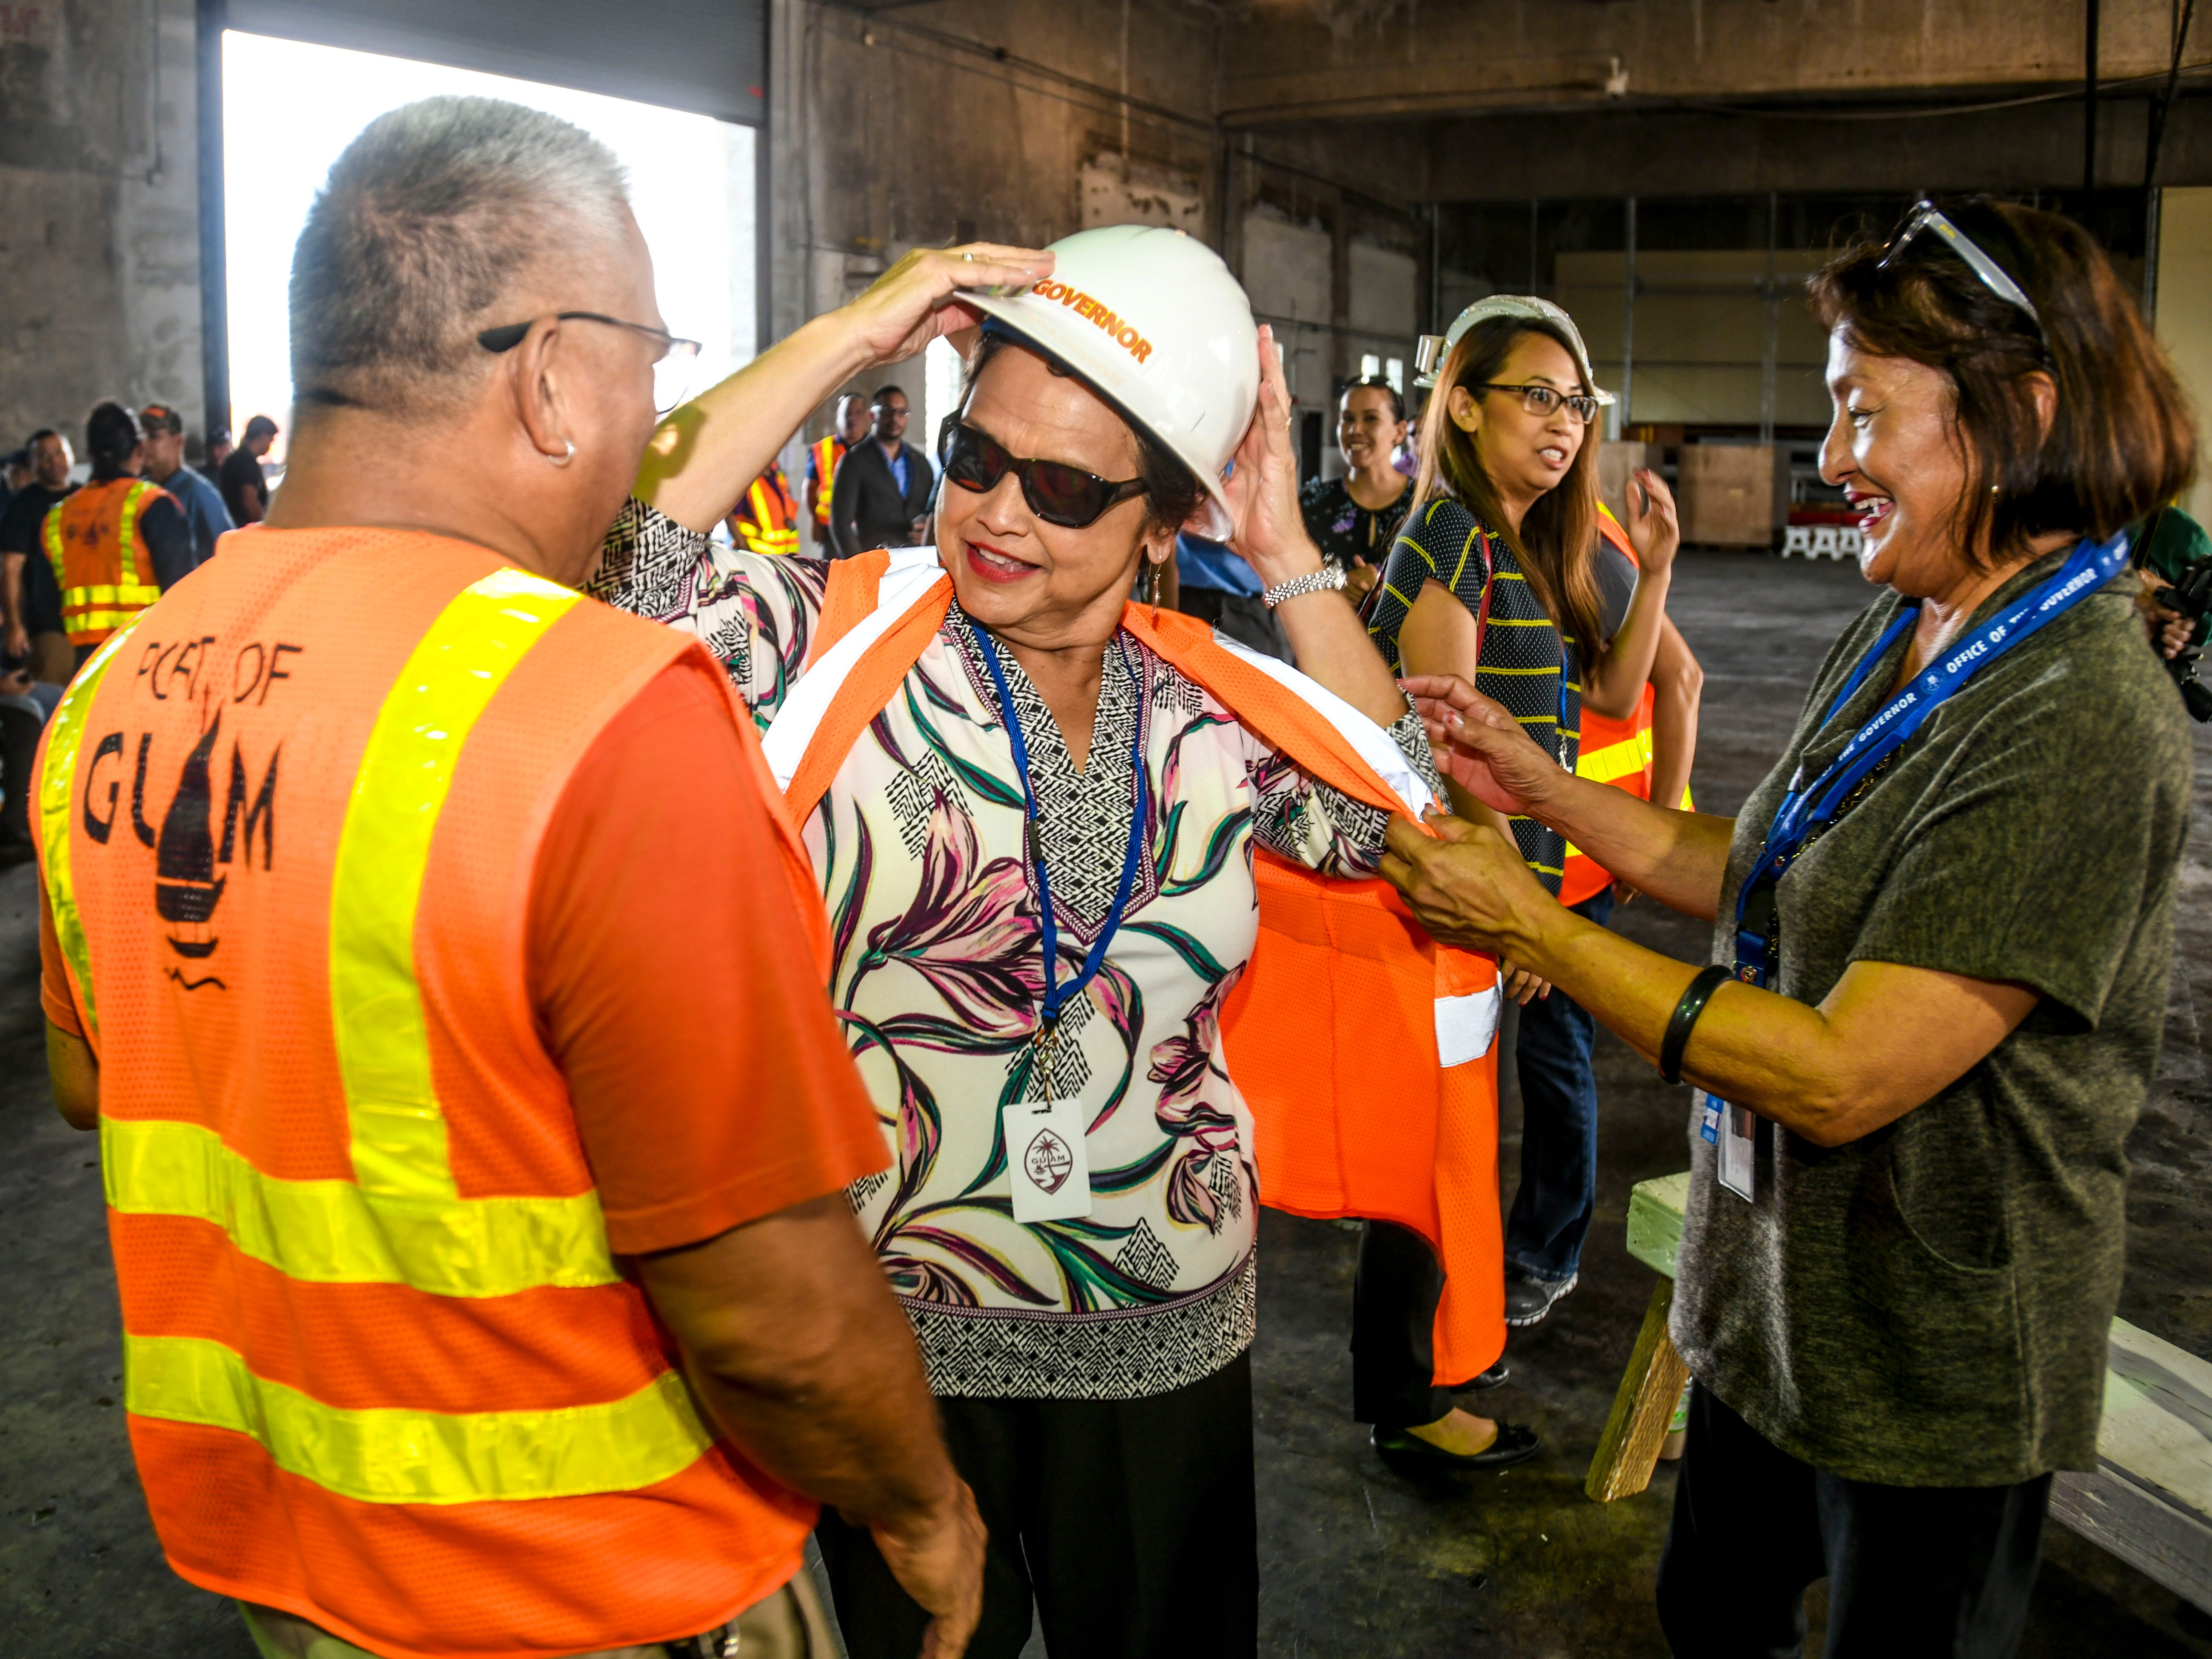 After meeting with a group of port employees, Gov. Lou Leon Guerrero dons a hard hat and safety vest prior to visiting the dockside of the Jose D. Leon Guerrero Commercial Port in Piti on Wednesday, March 13, 2019.